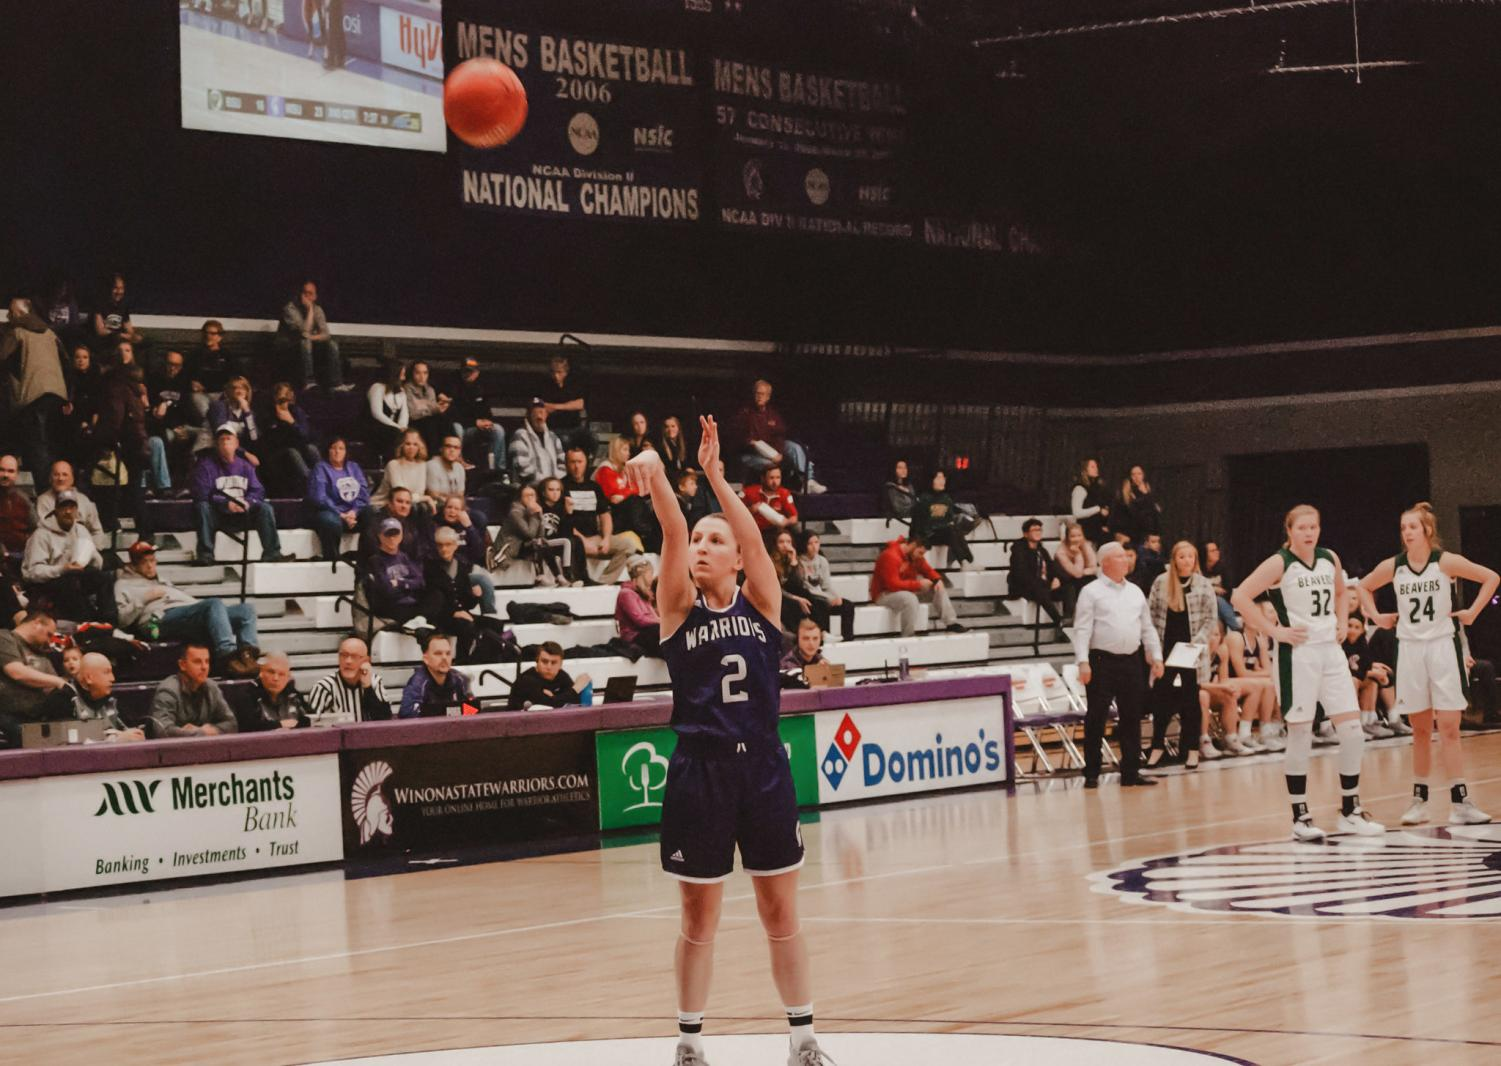 Winona State sophomore, Allie Pickrain makes a single shot at the home game on Saturday, Nov. 16 against Bemidji State. The Warriors emerged victorious scoring 76-67.